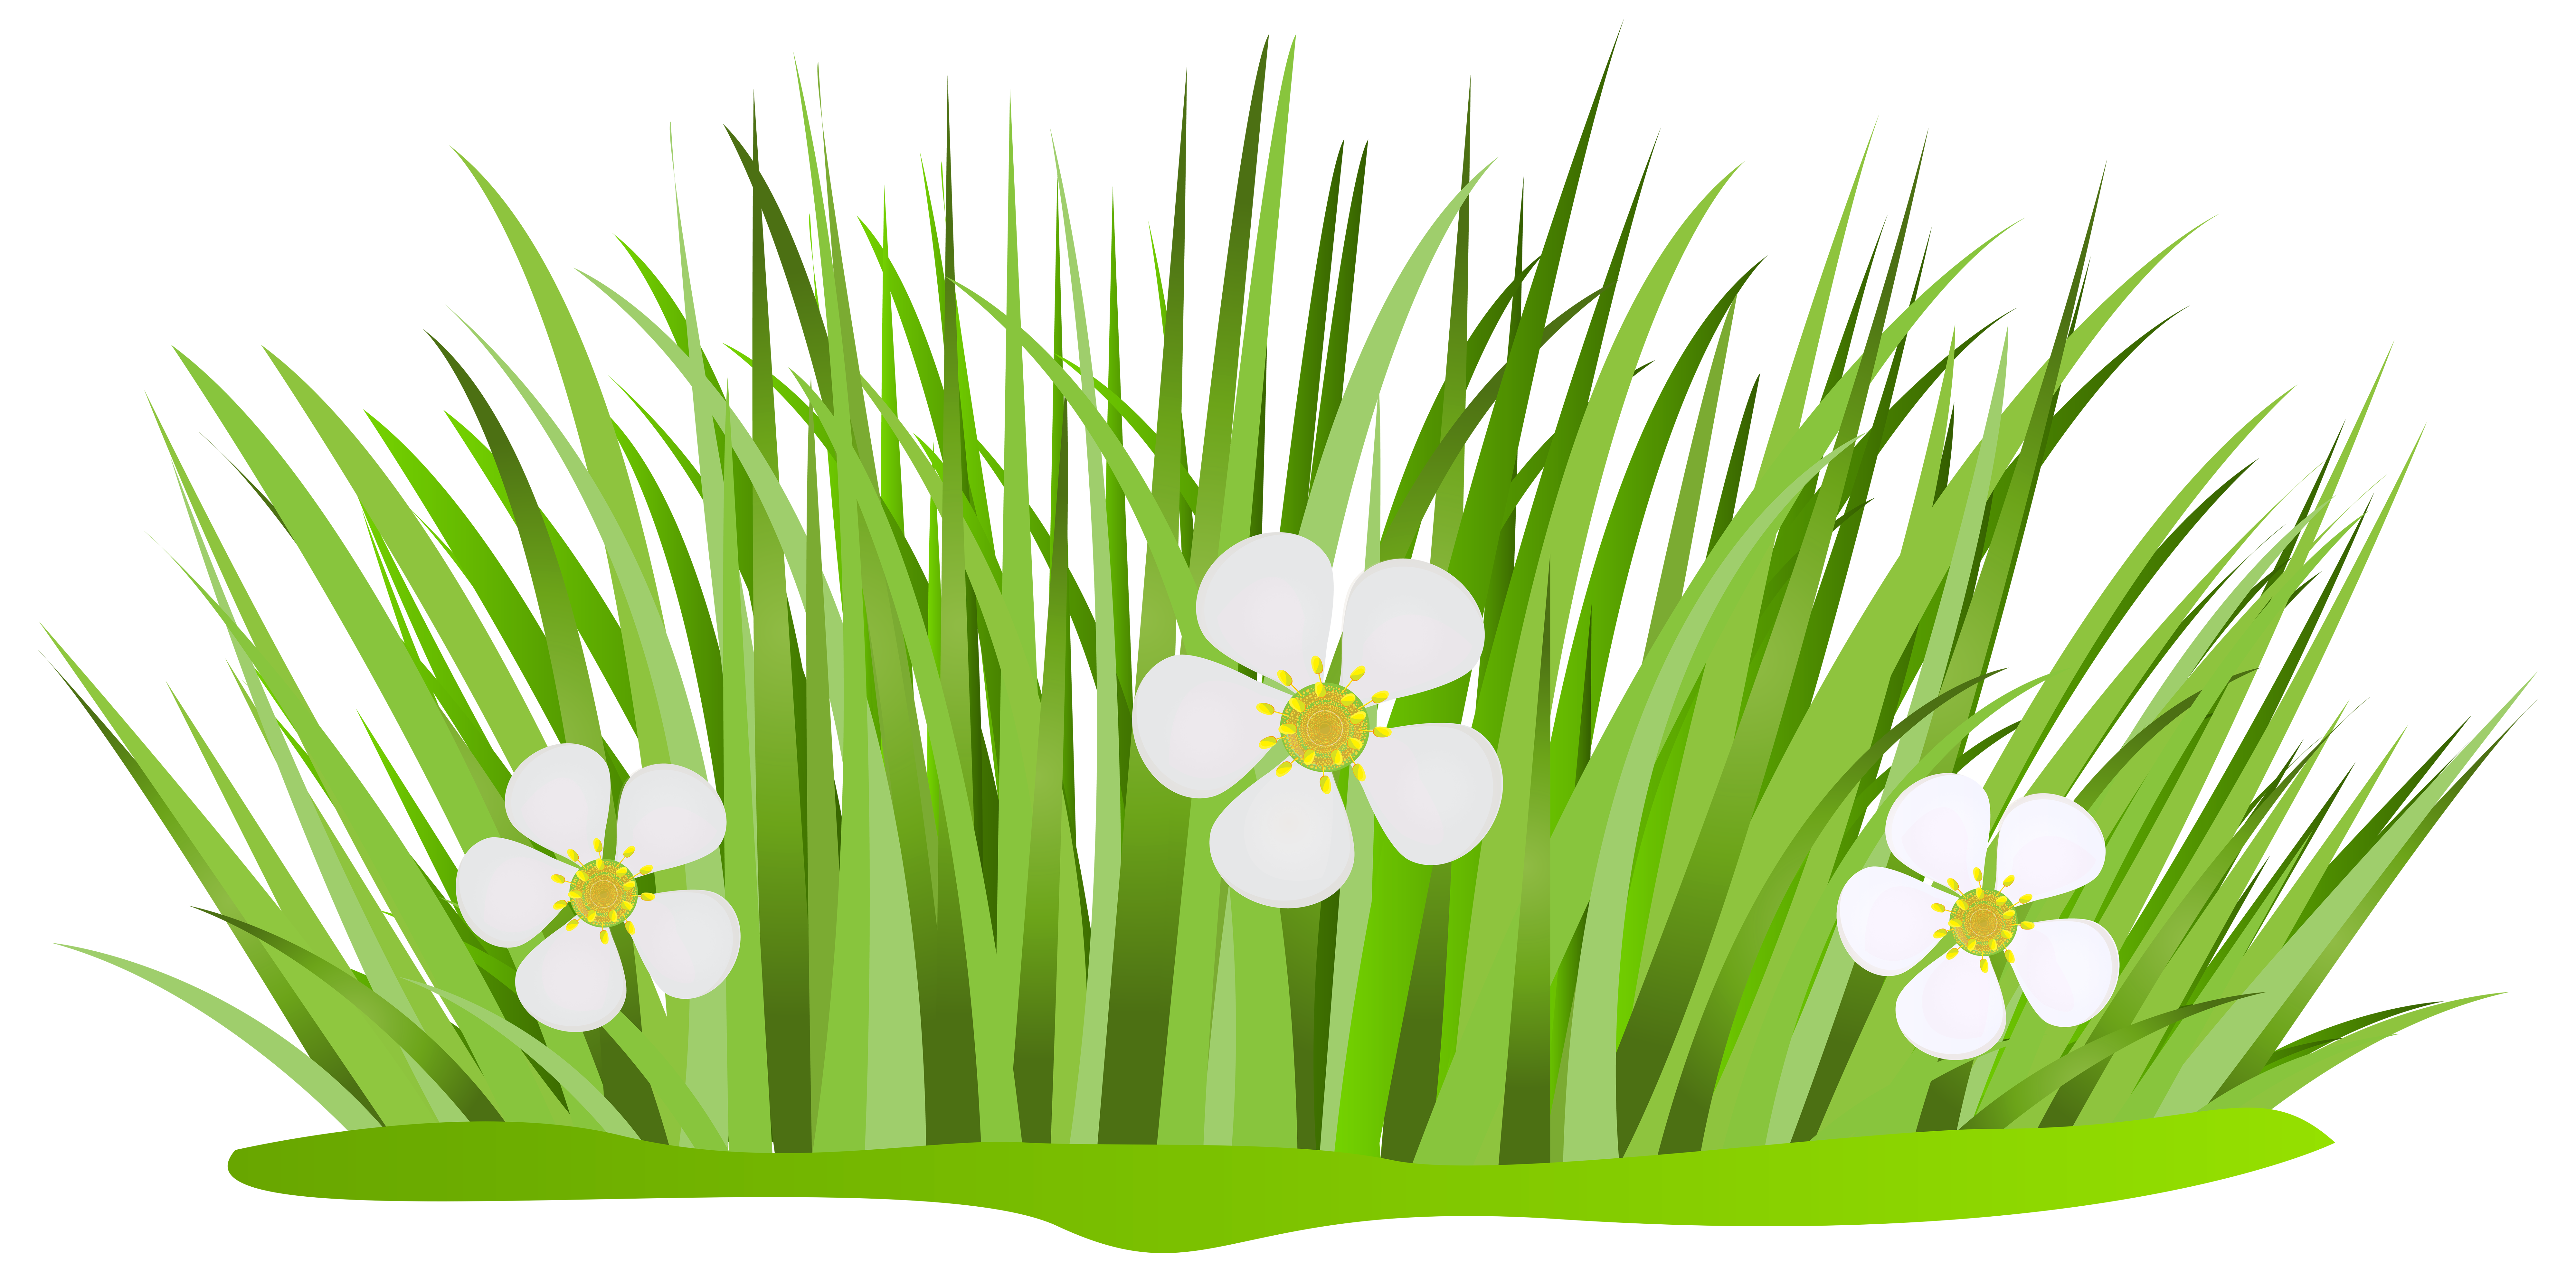 Daisy clipart patch grass.  collection of high